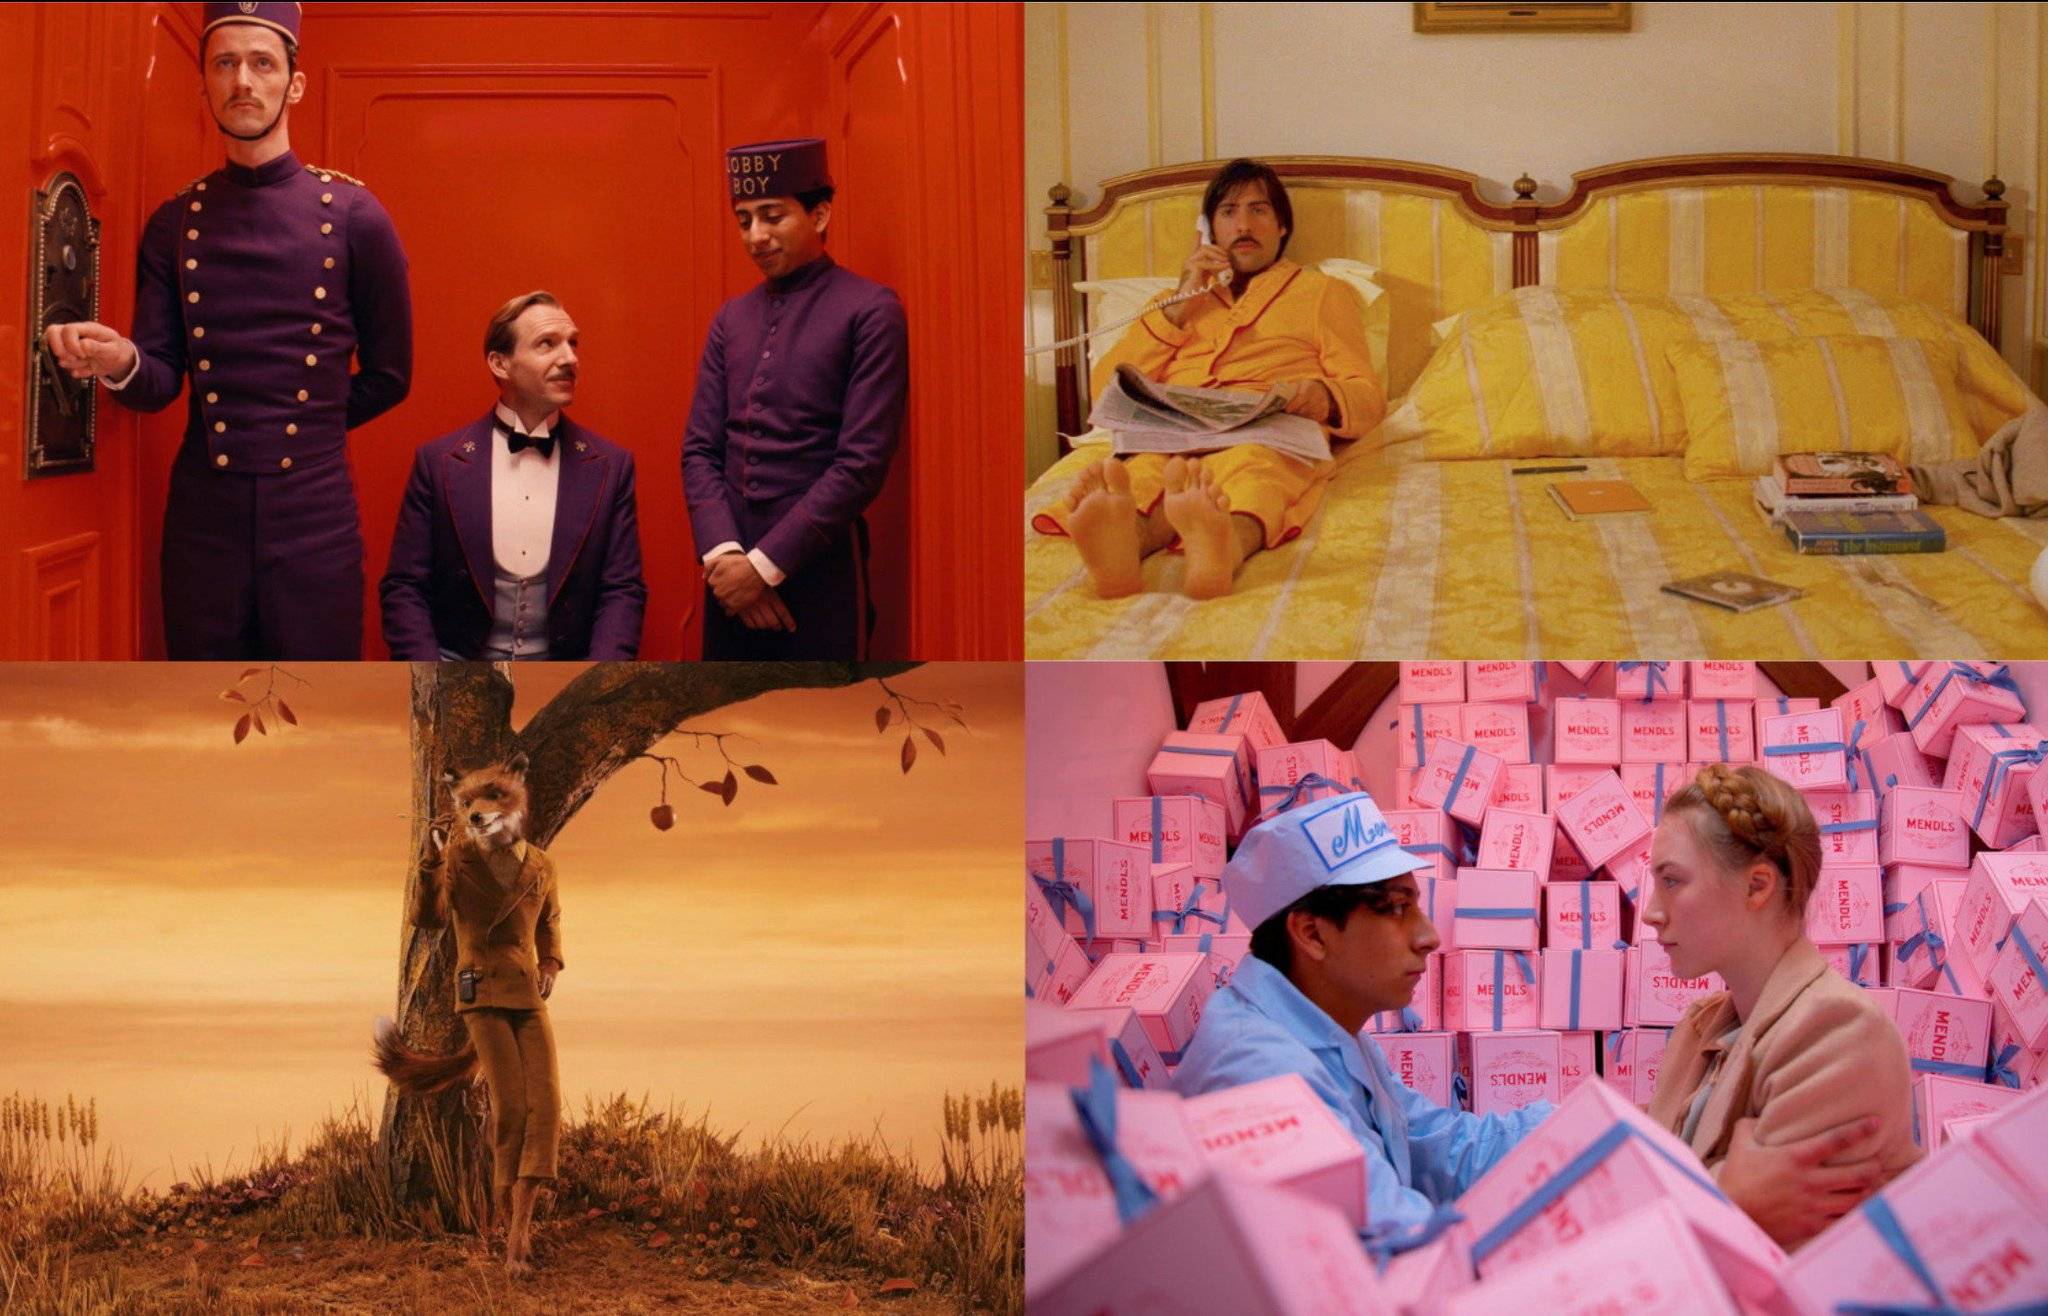 Class, comfort, nature, love. I wish more filmmakers had an appreciation for color like Wes Anderson. https://t.co/0hsp2qzSJT